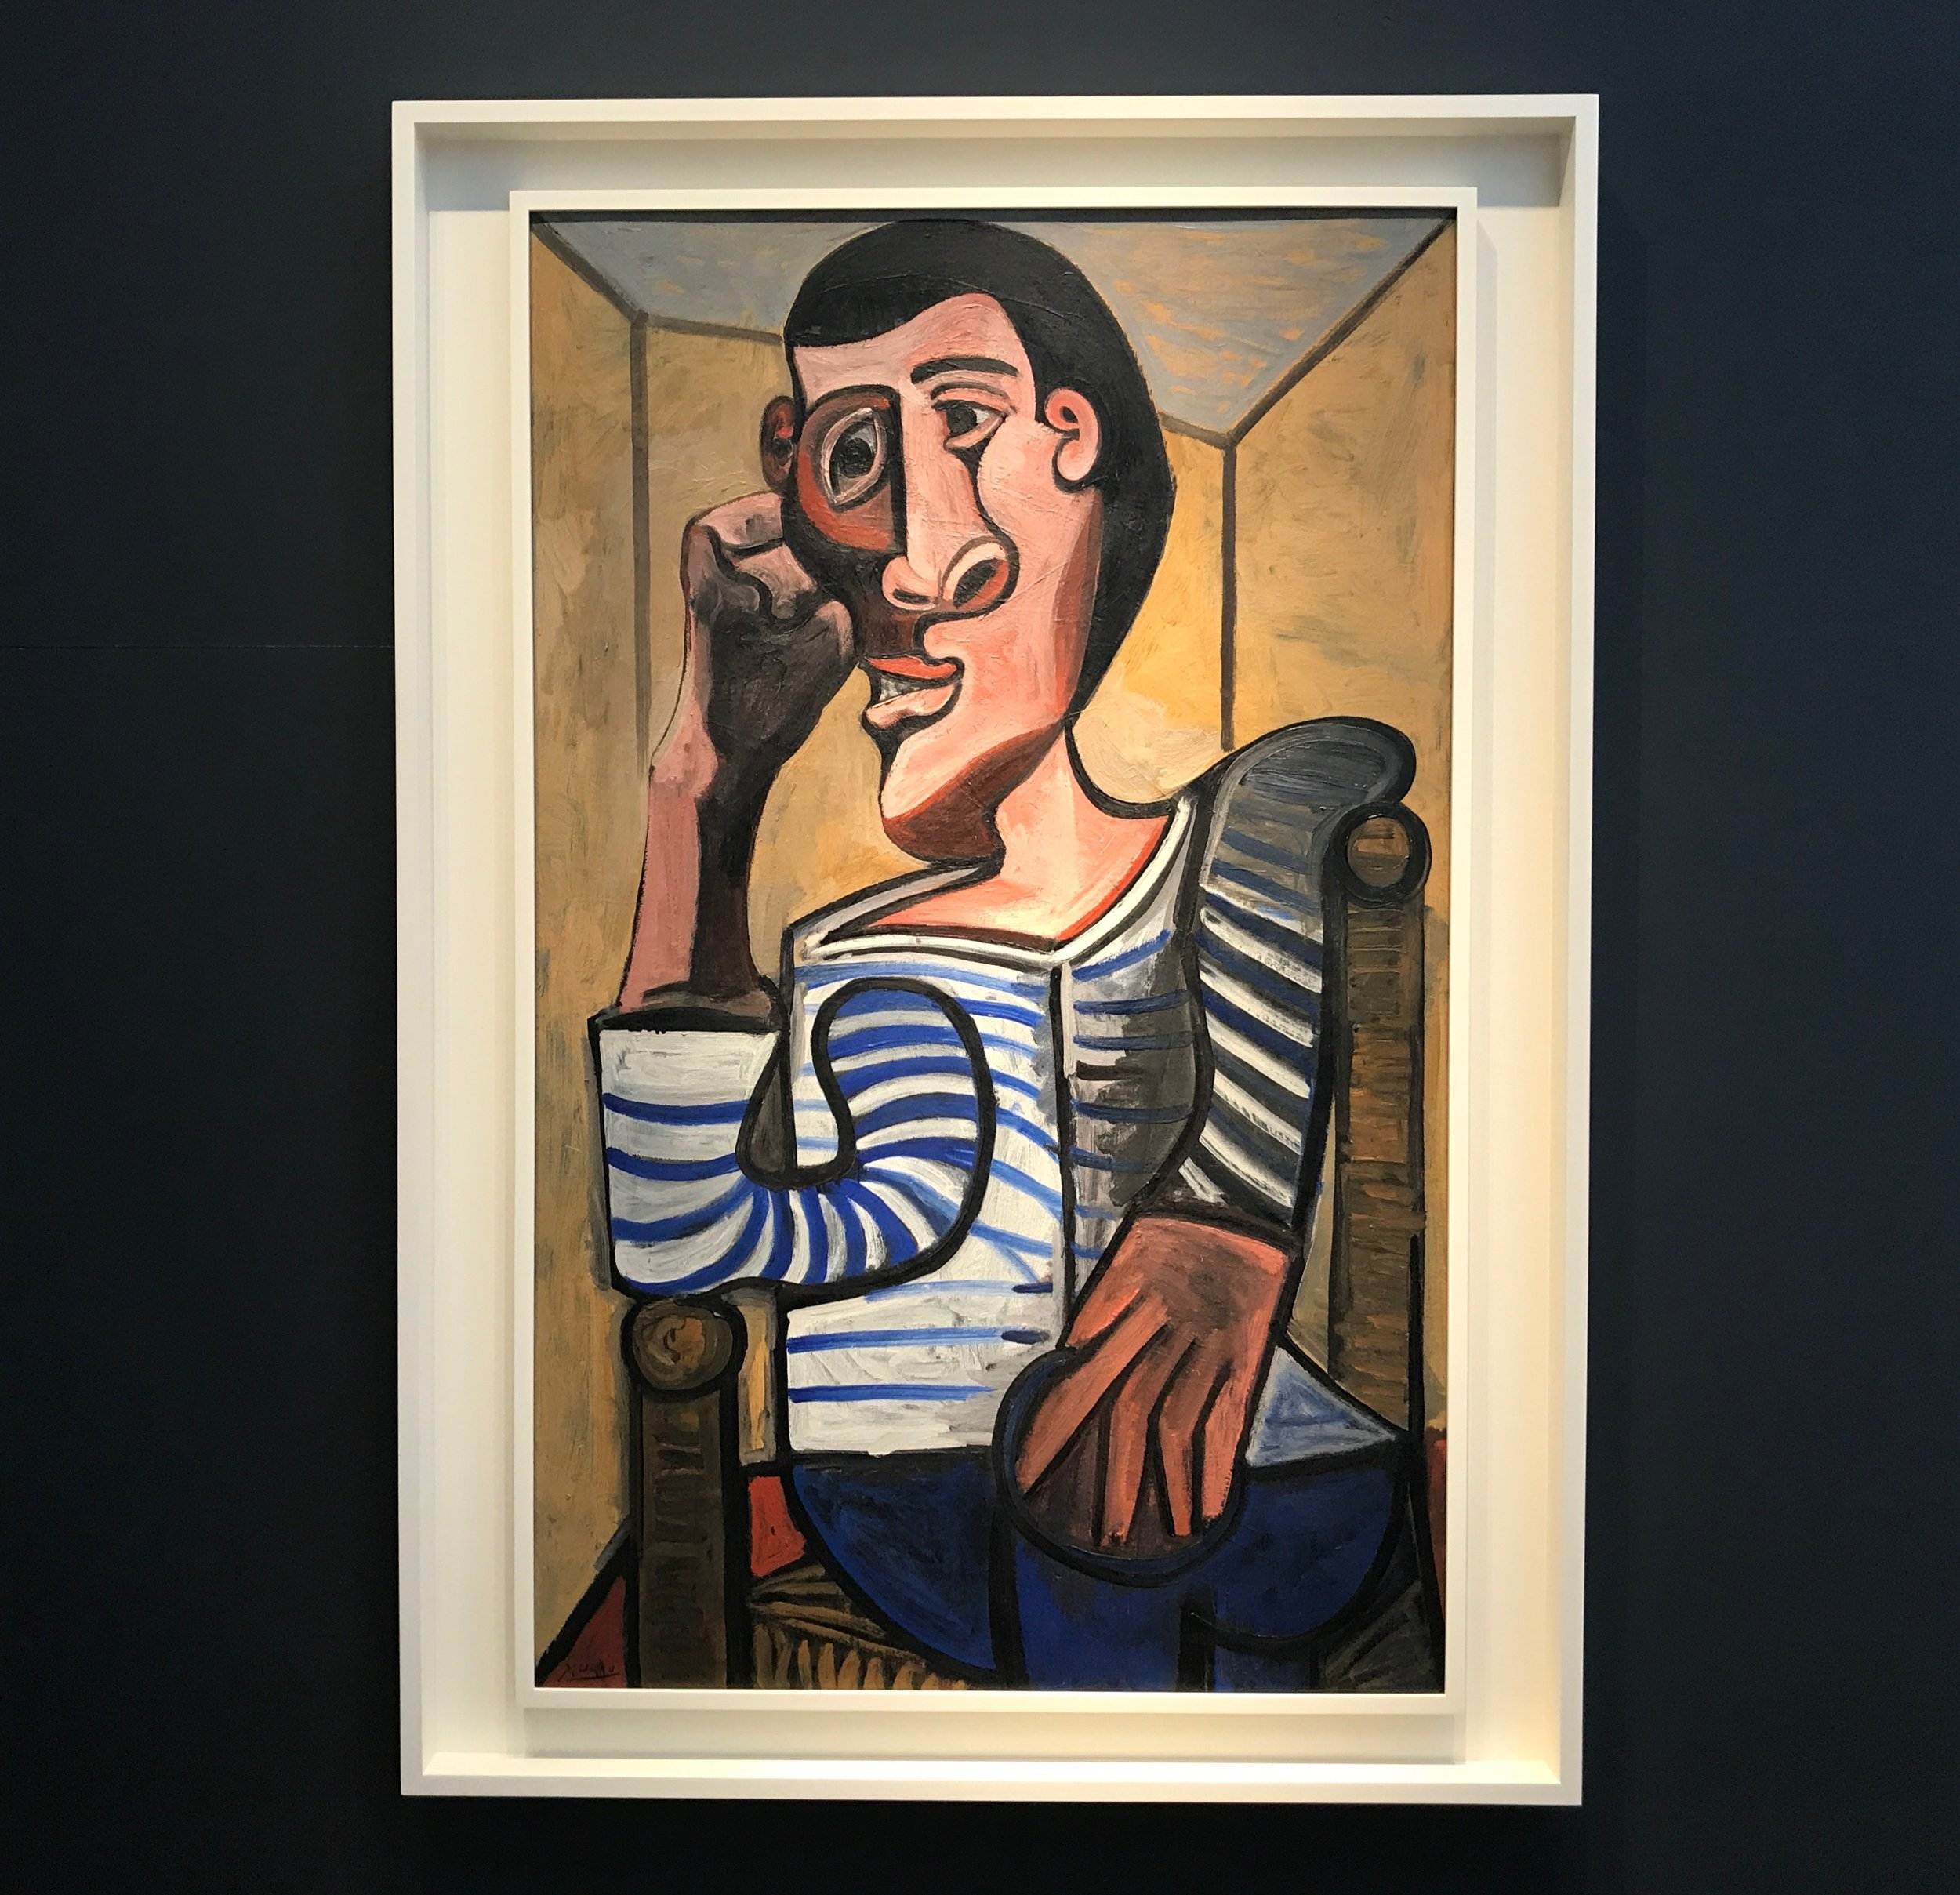 Pablo Picasso ,  Le Marin , oil on canvas, signed 'Picasso' at lower left, dated '28.10.43' verso, 51 x 31 7/8 inches.